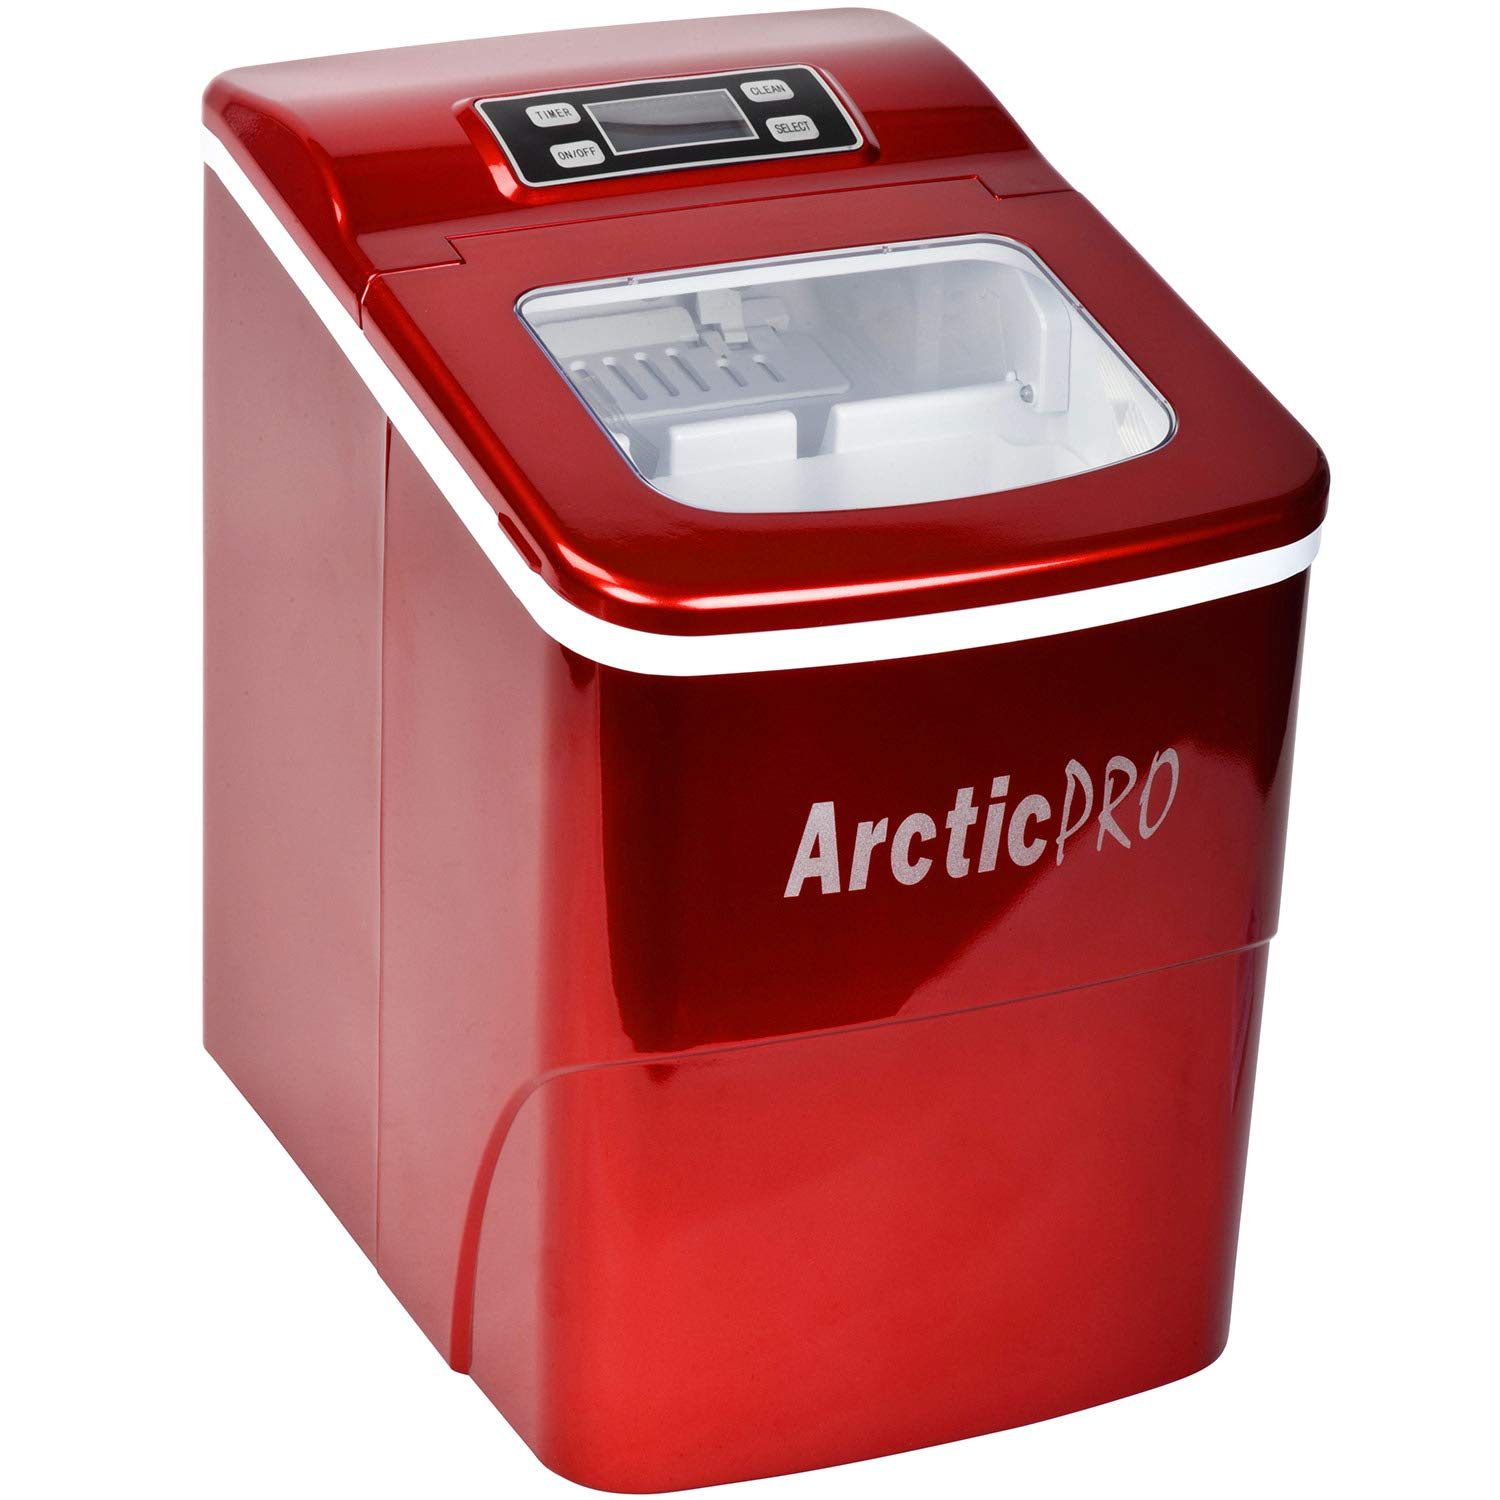 PORTABLE DIGITAL ICE MAKER MACHINE by Arctic-Pro with Ice Scoop, First Ice in 8 Minutes, 26 Pounds Daily, Great for Kitchens, Tailgating, Bars, Parties, Small/Large Cubes, Red, 11.5x8.7x12.5 Inches